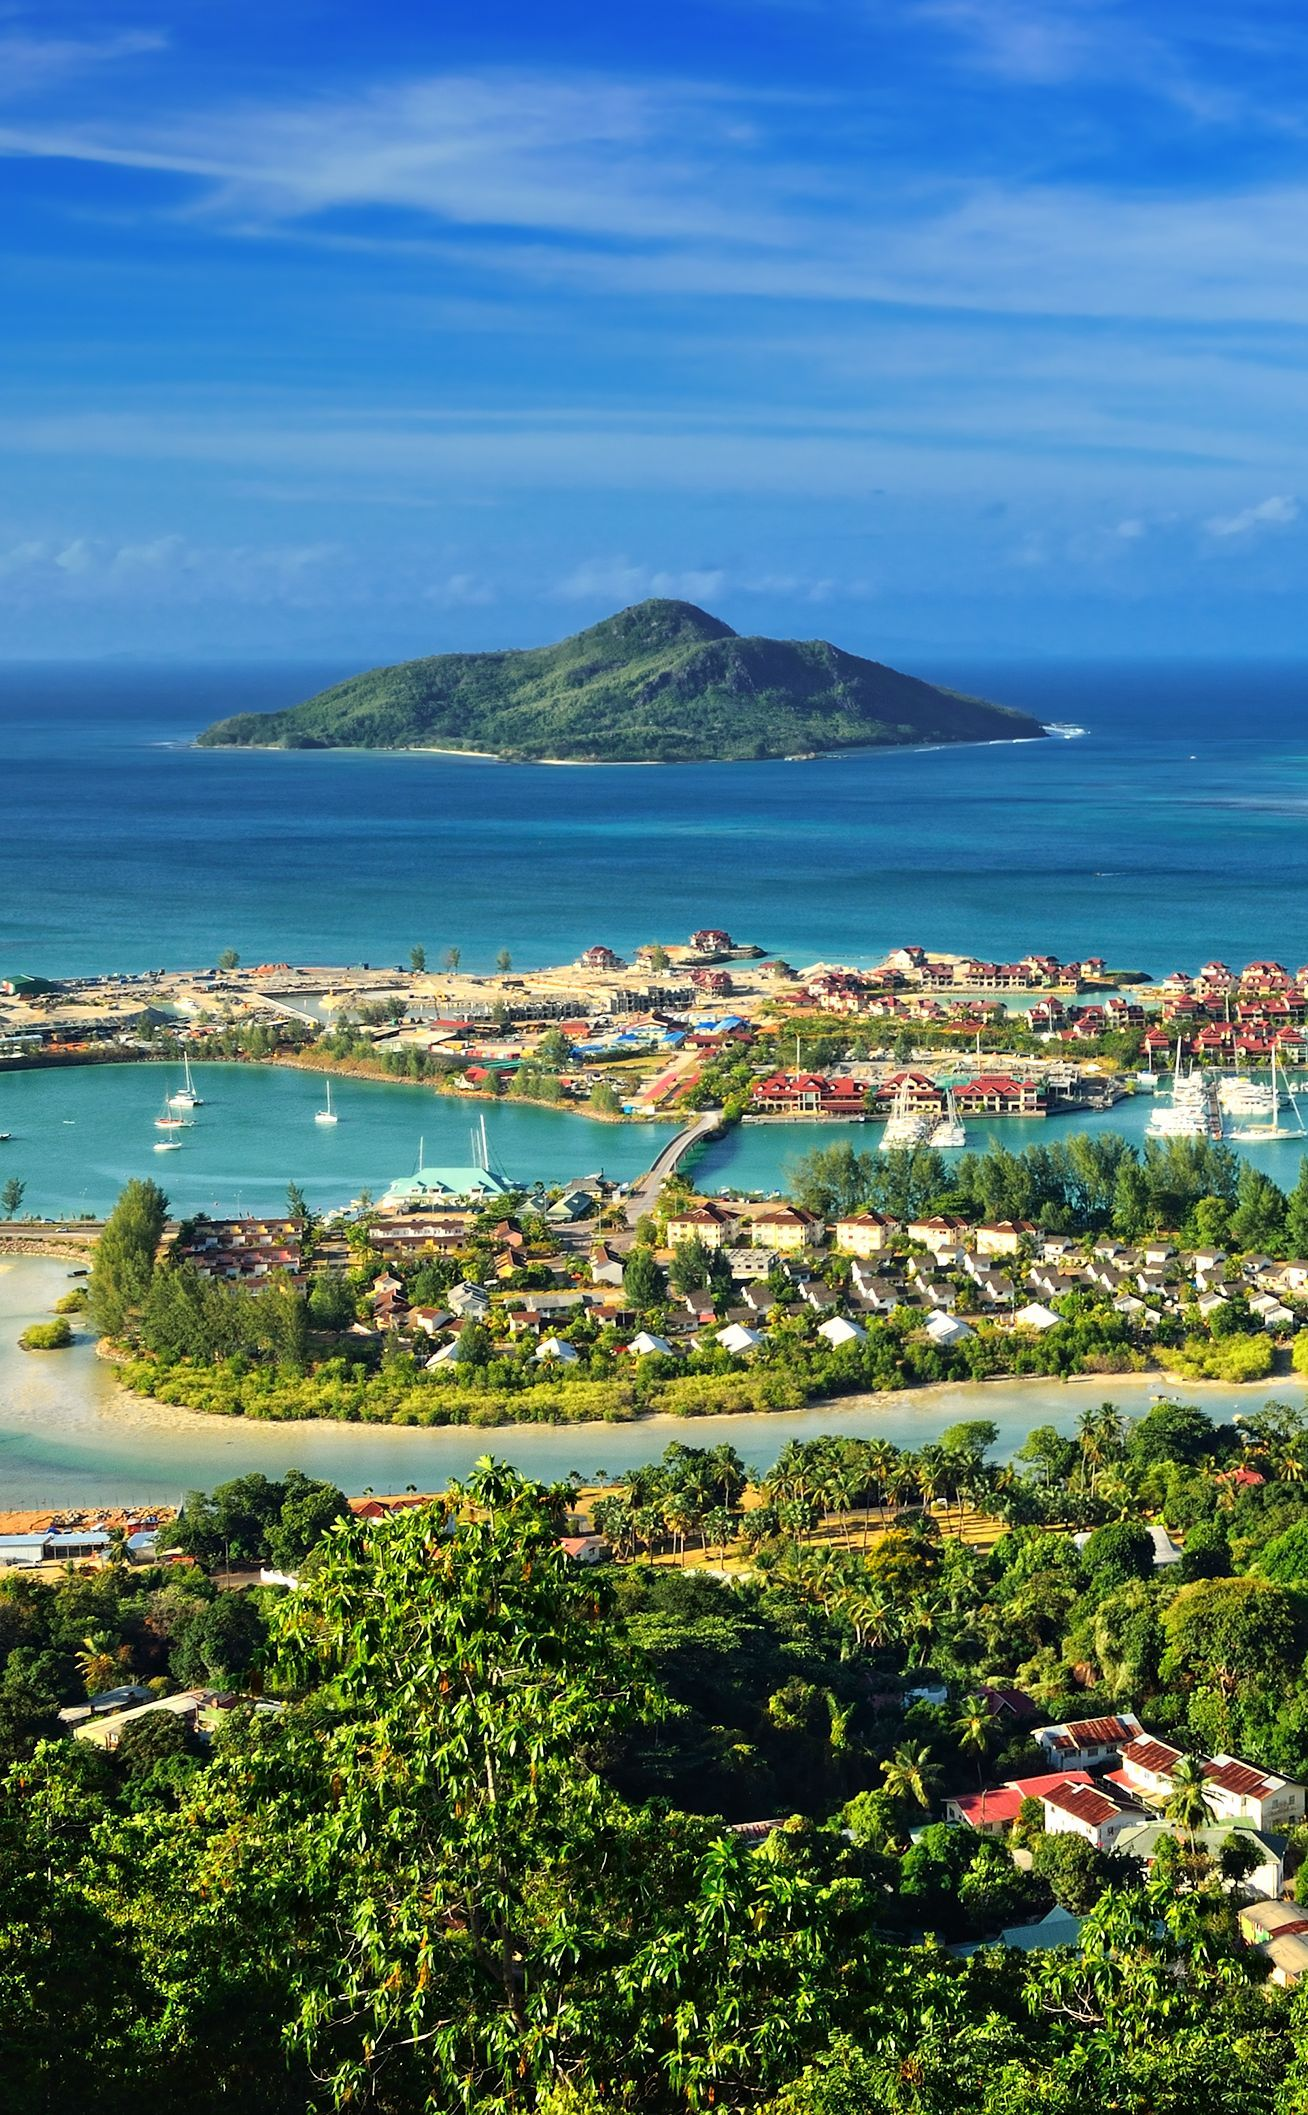 6 Reasons Why The Seychelles Archipelago Will Attract You